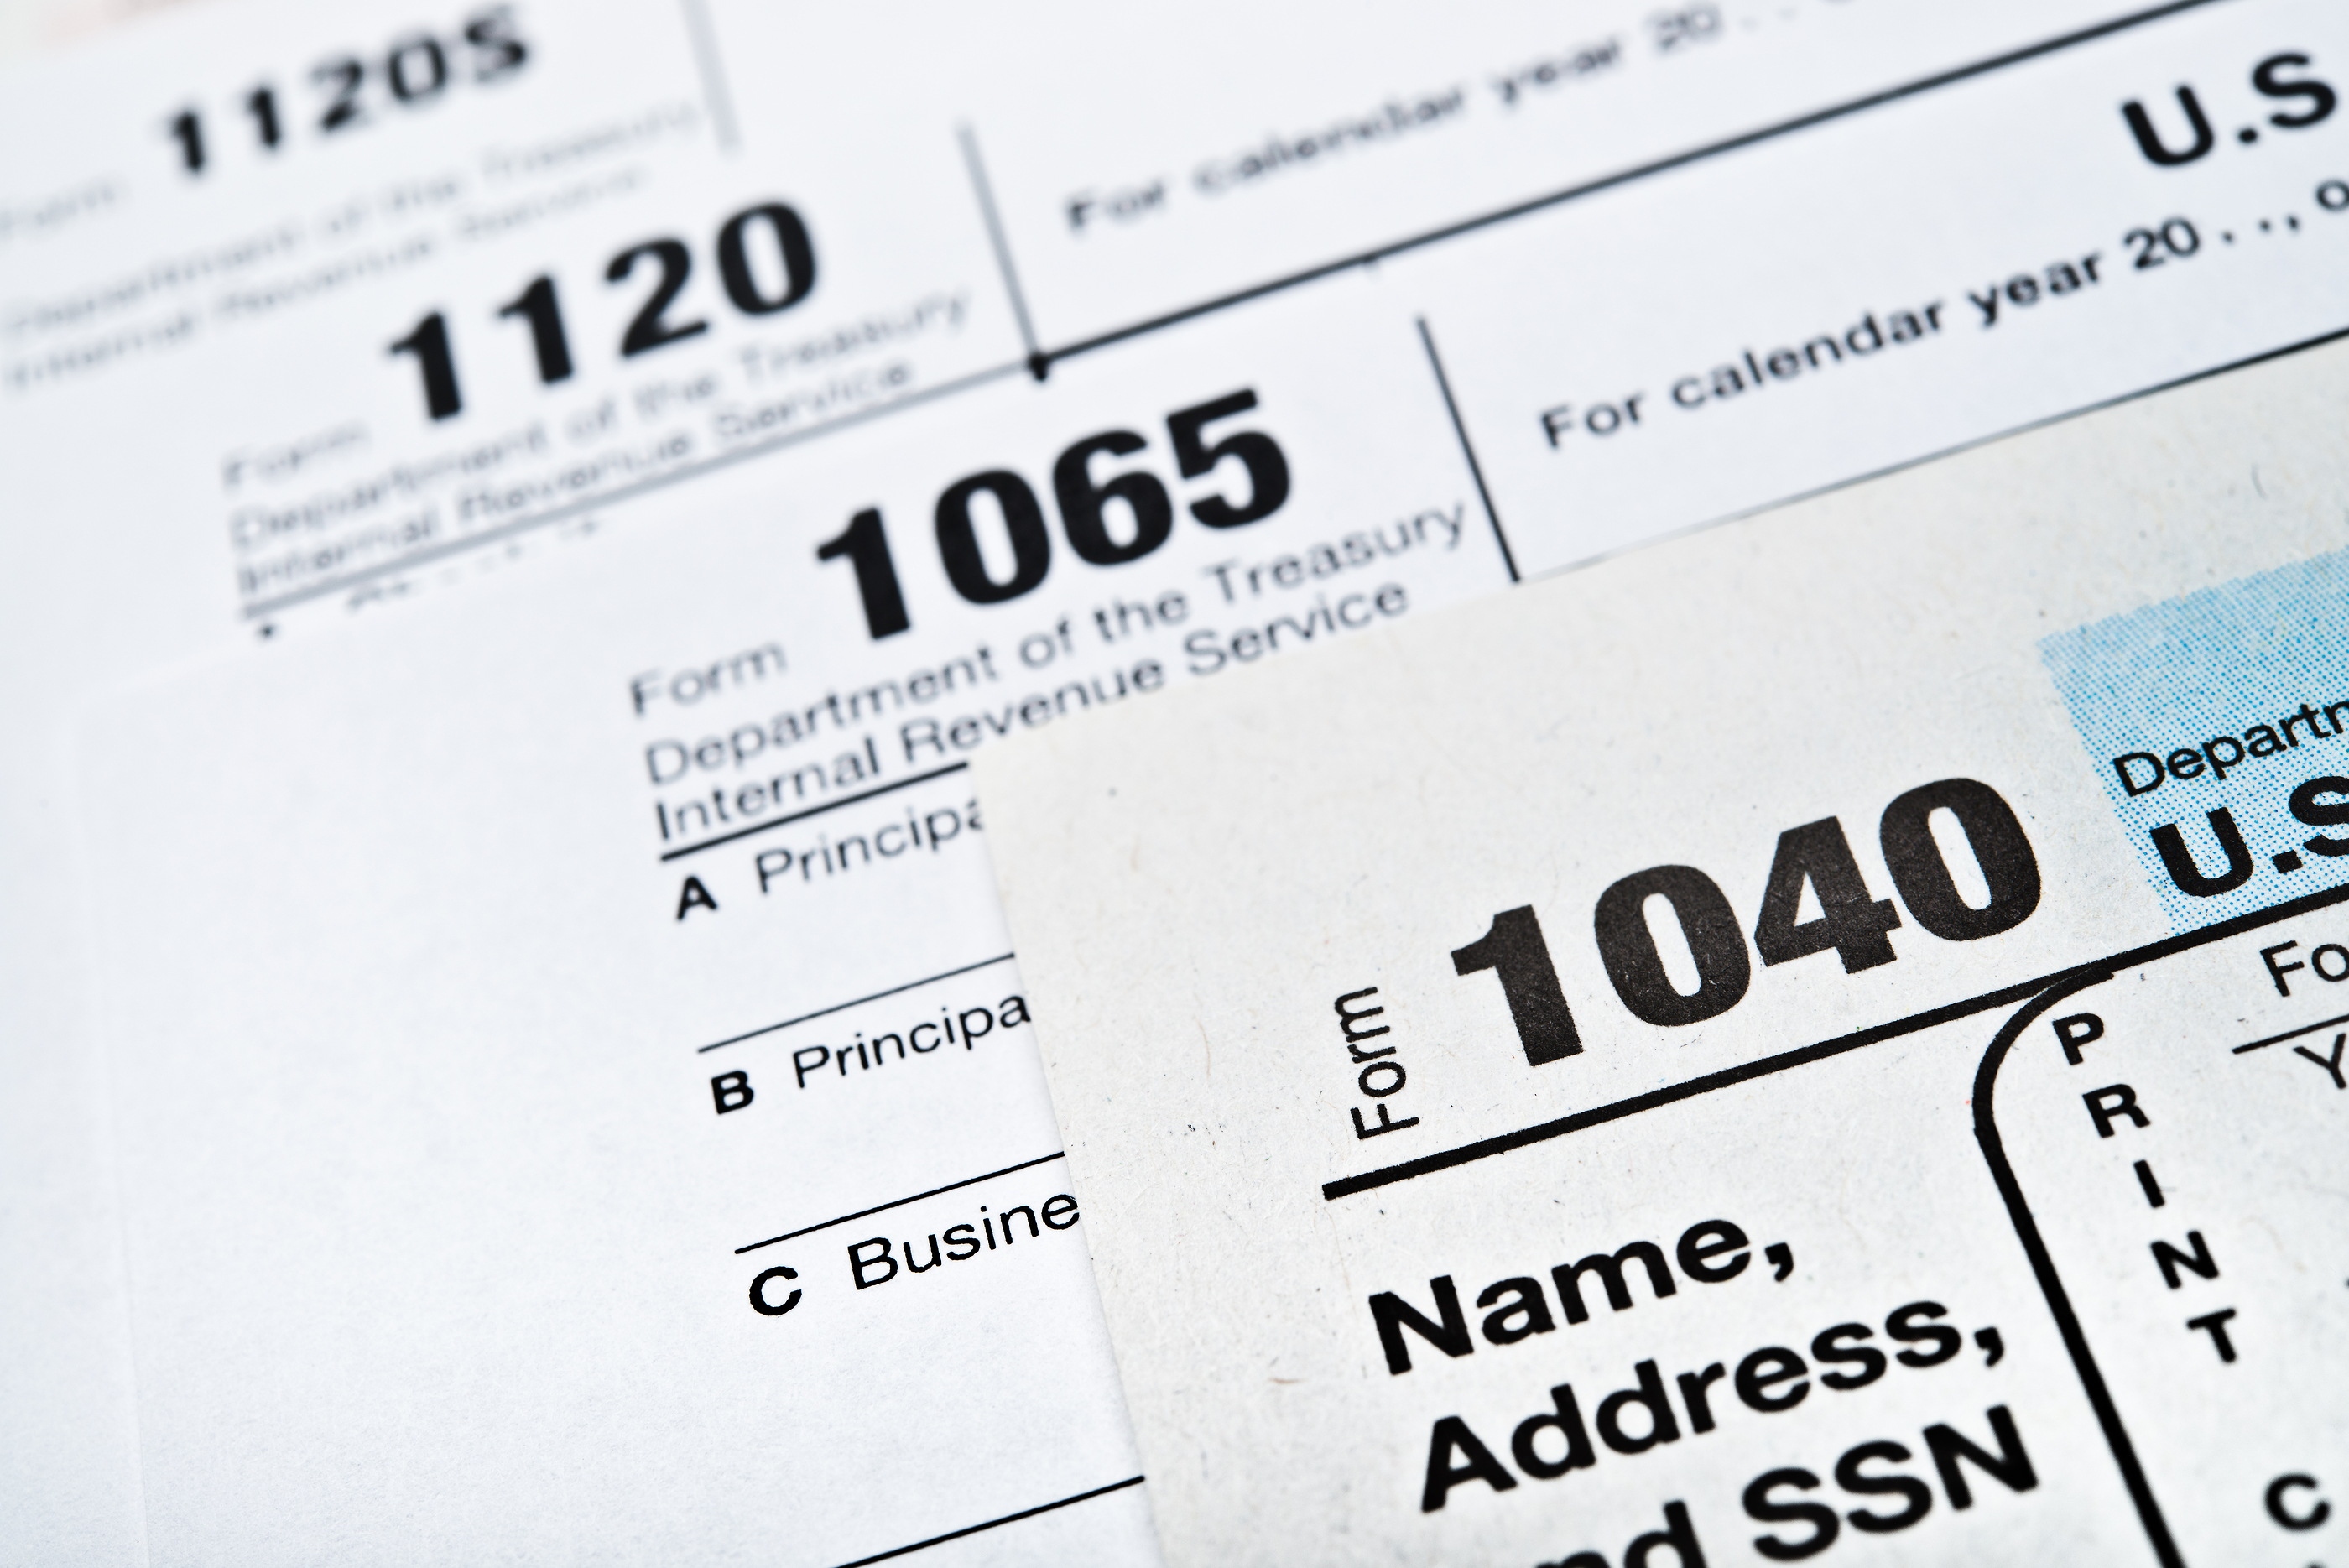 Irs form 8621 gallery standard form examples common irs forms for americans living in canada accountant common irs forms for americans living in falaconquin